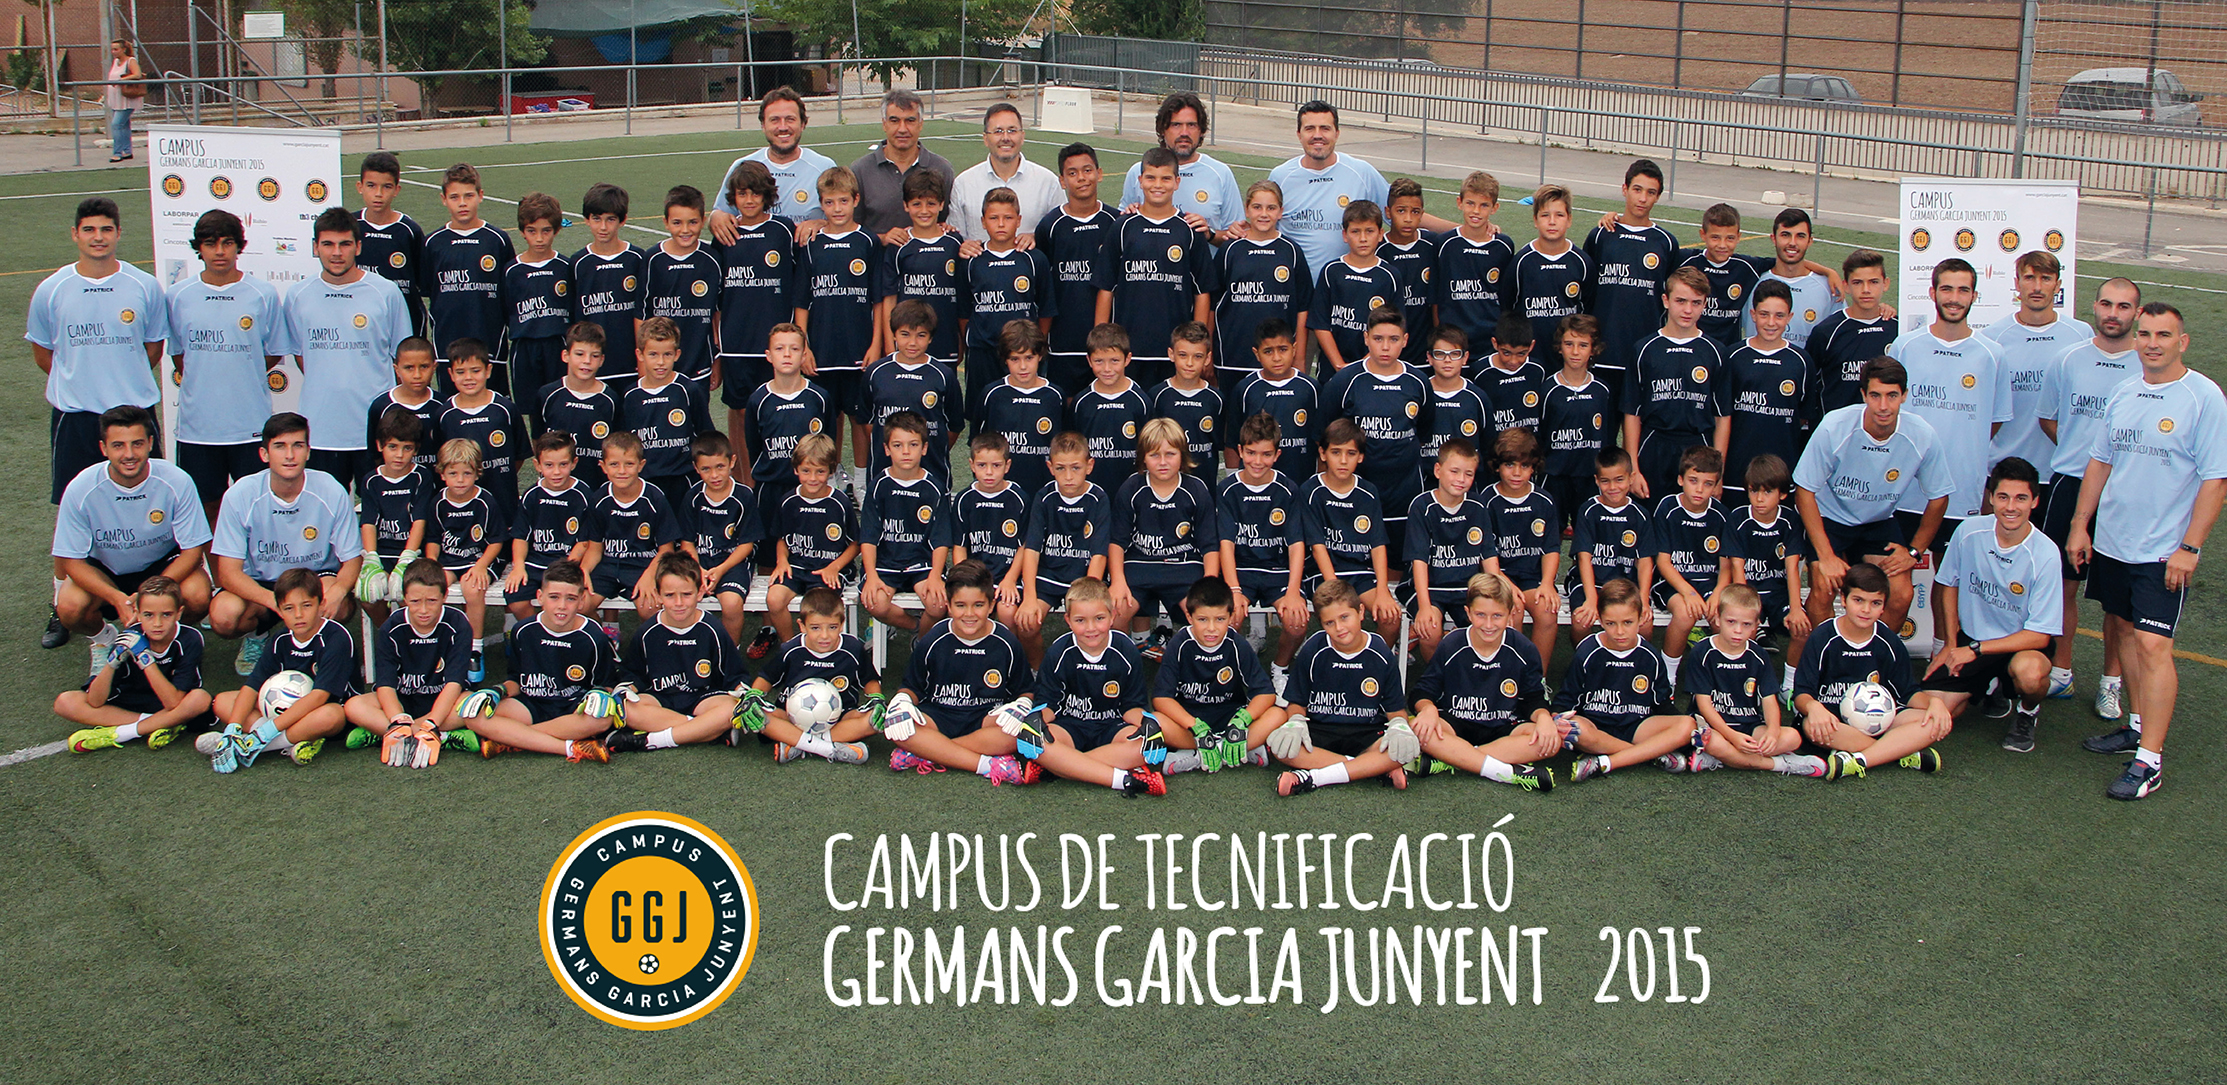 2n Campus Germans Garcia Junyent